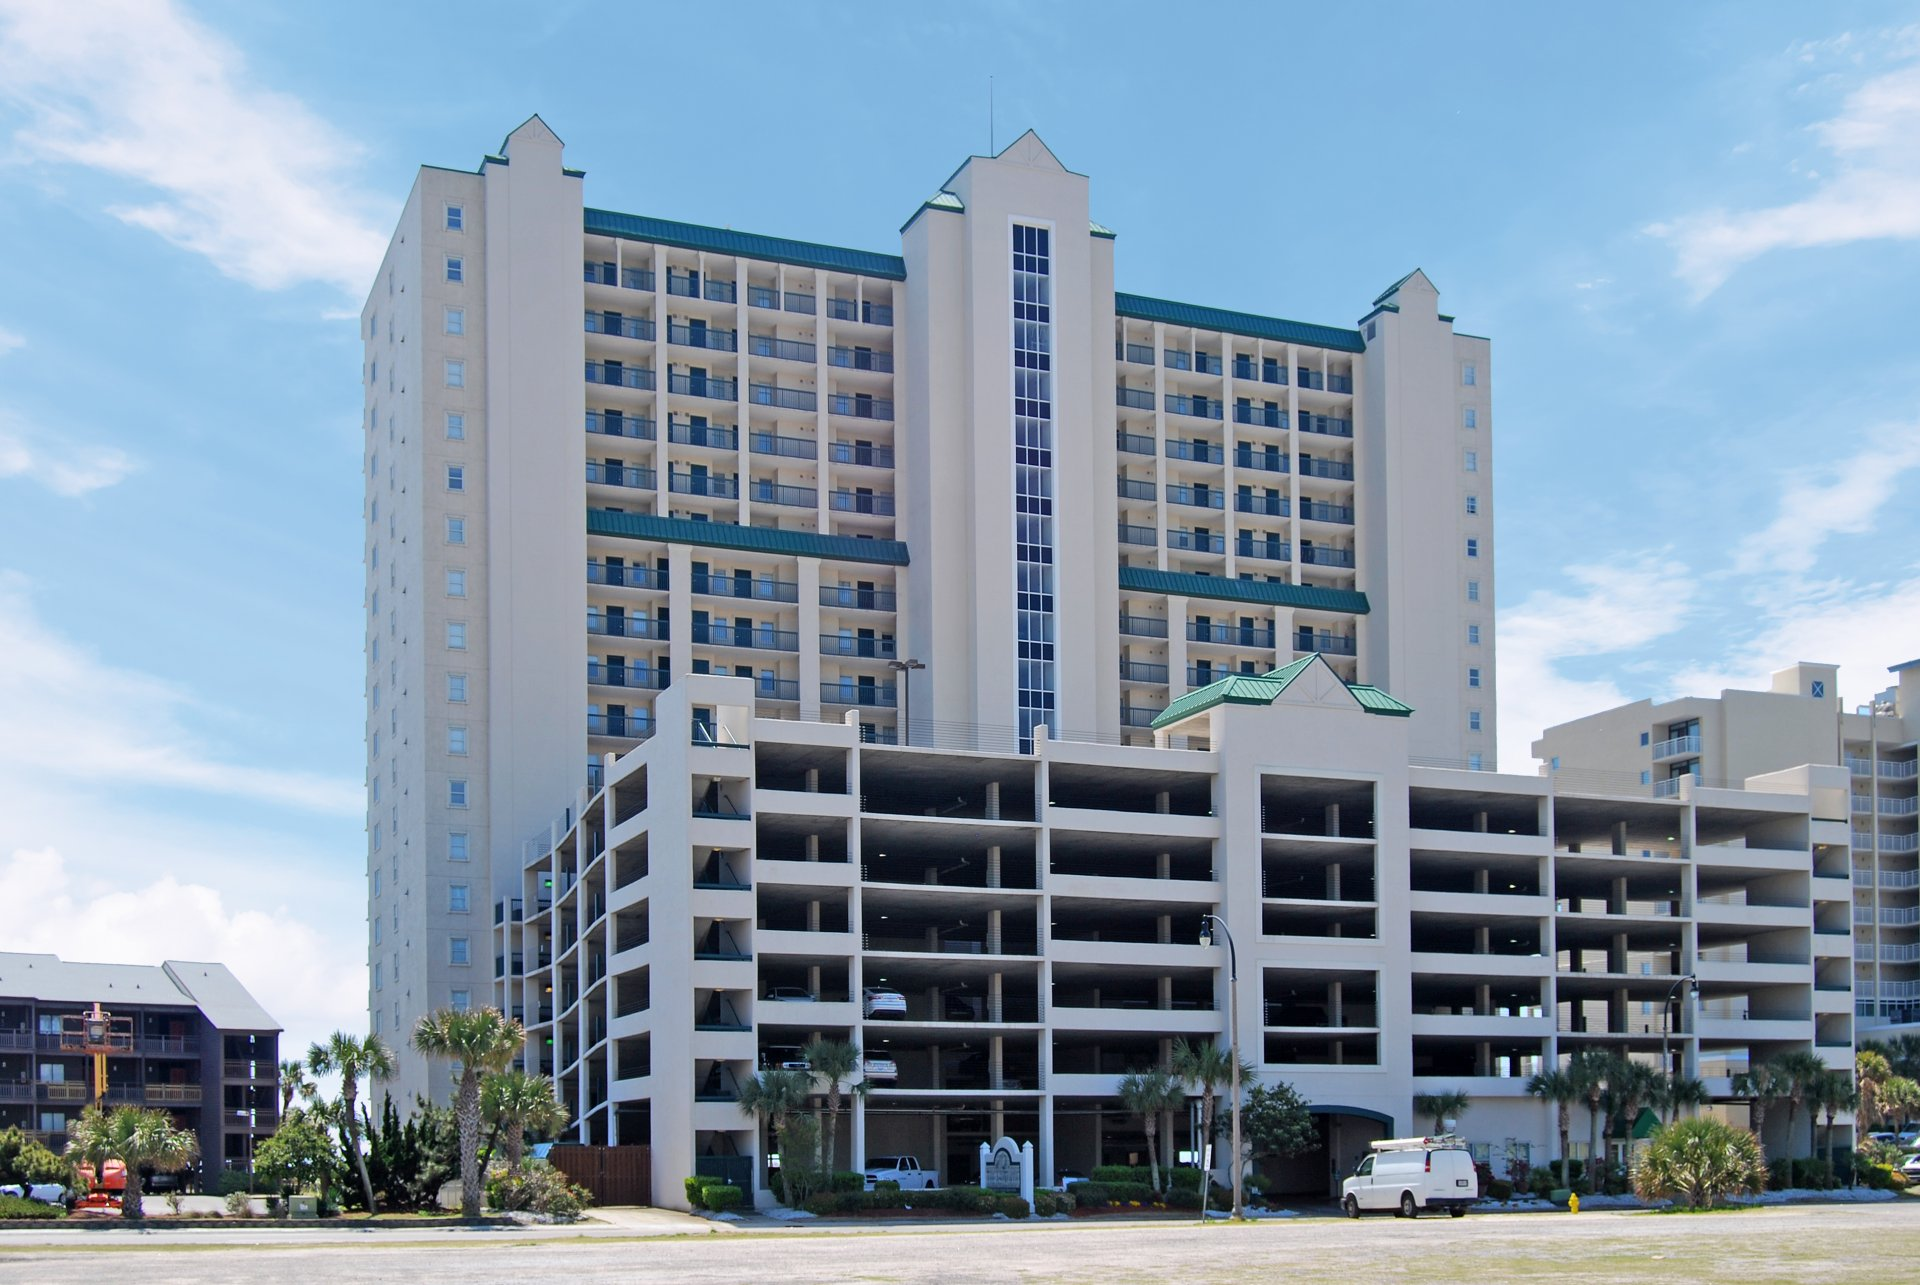 3 Bedroom Condos In North Myrtle Beach The Ashworth North Myrtle Beach Best Rental Rates Available